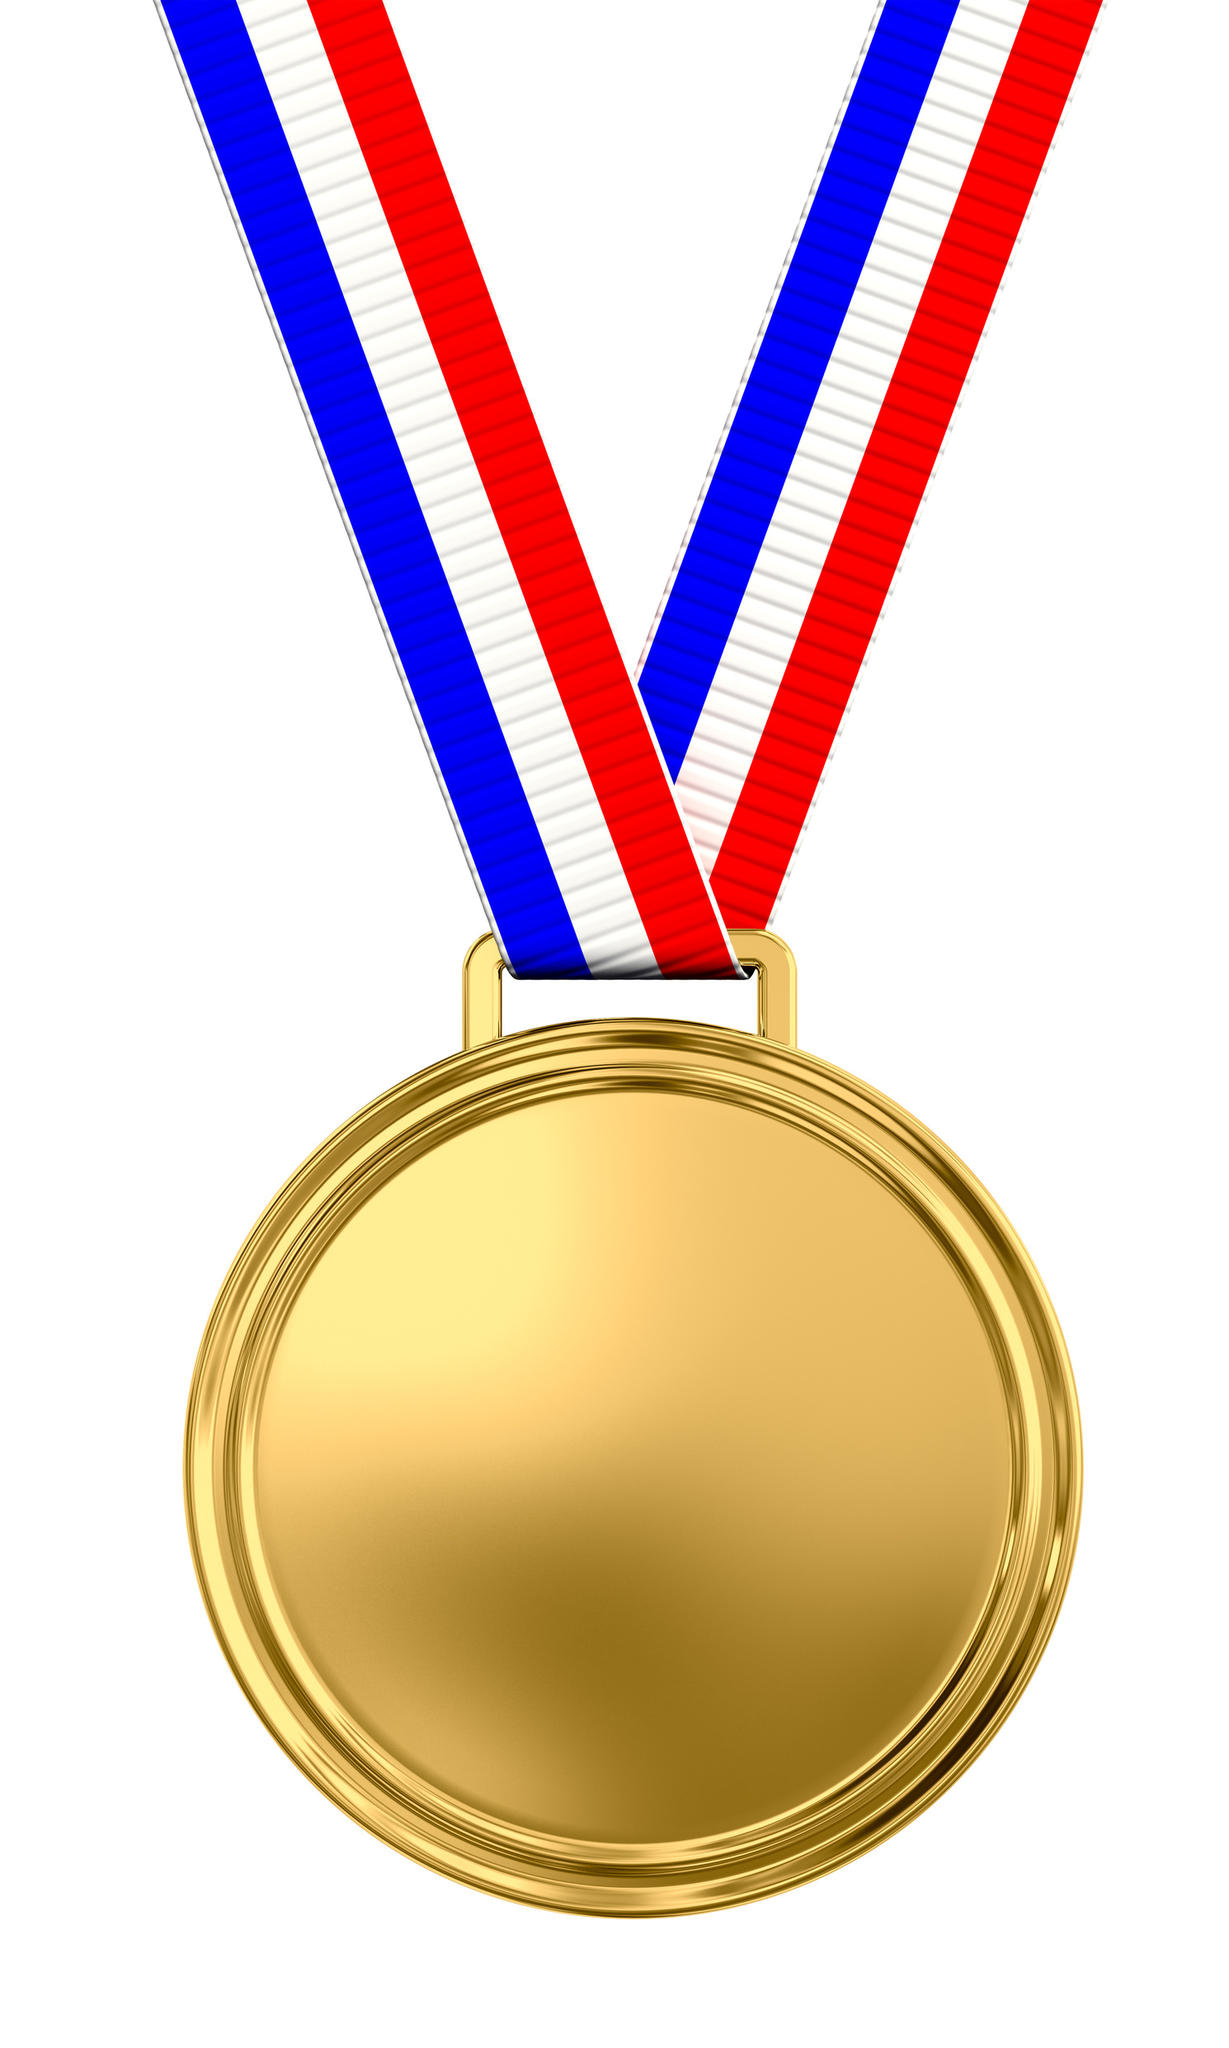 Gold Medal.png - Gold Award PNG